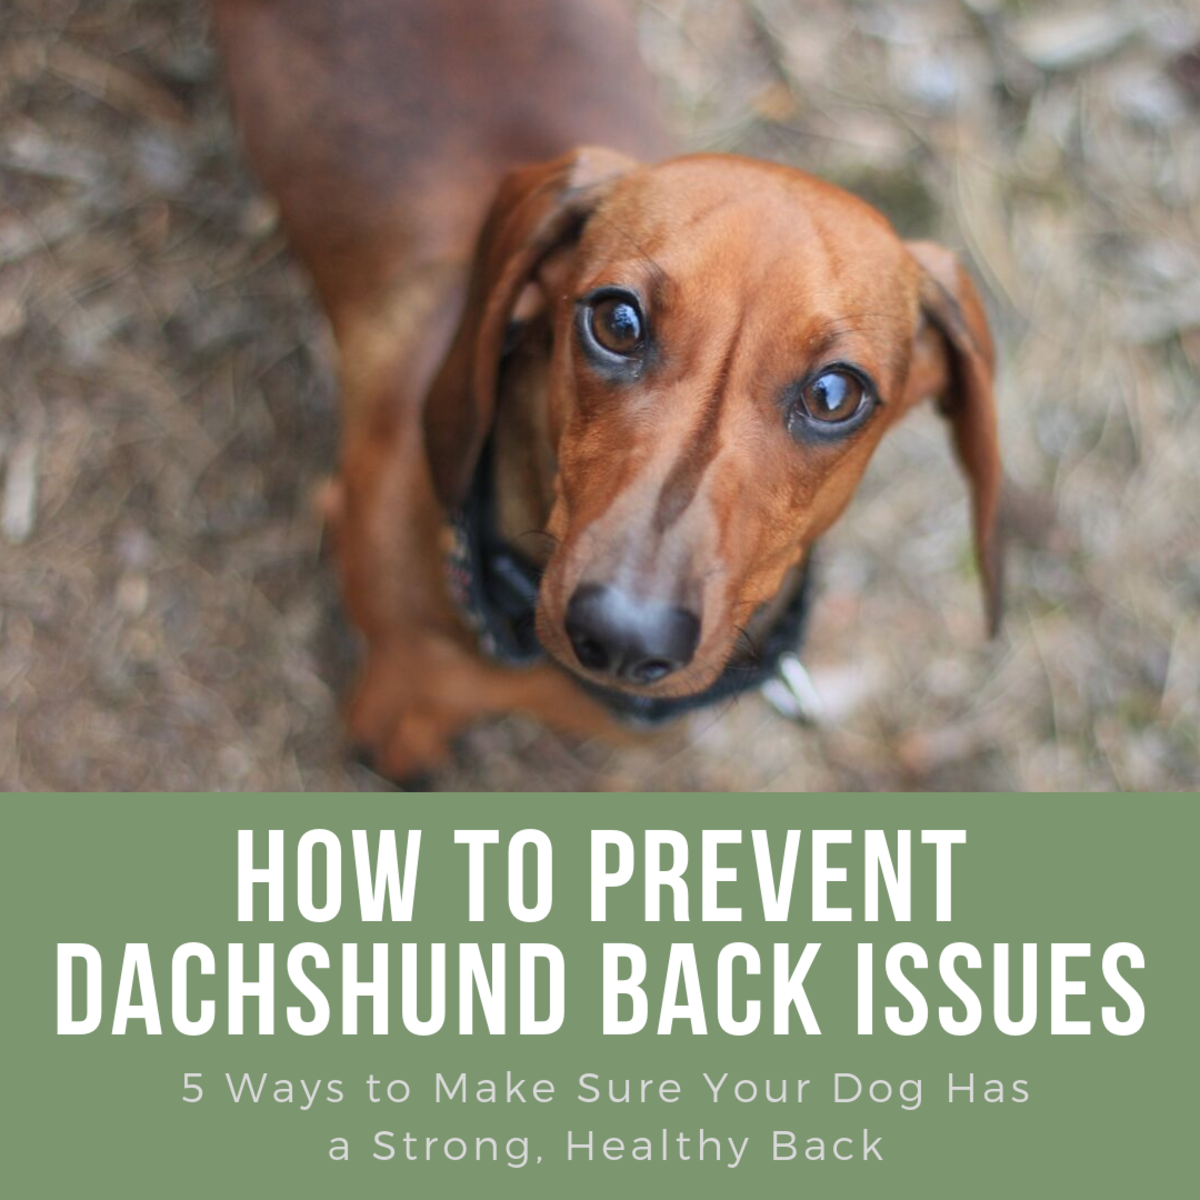 Dachshunds often develop back problems, but these tips can help your dog stay strong and healthy.